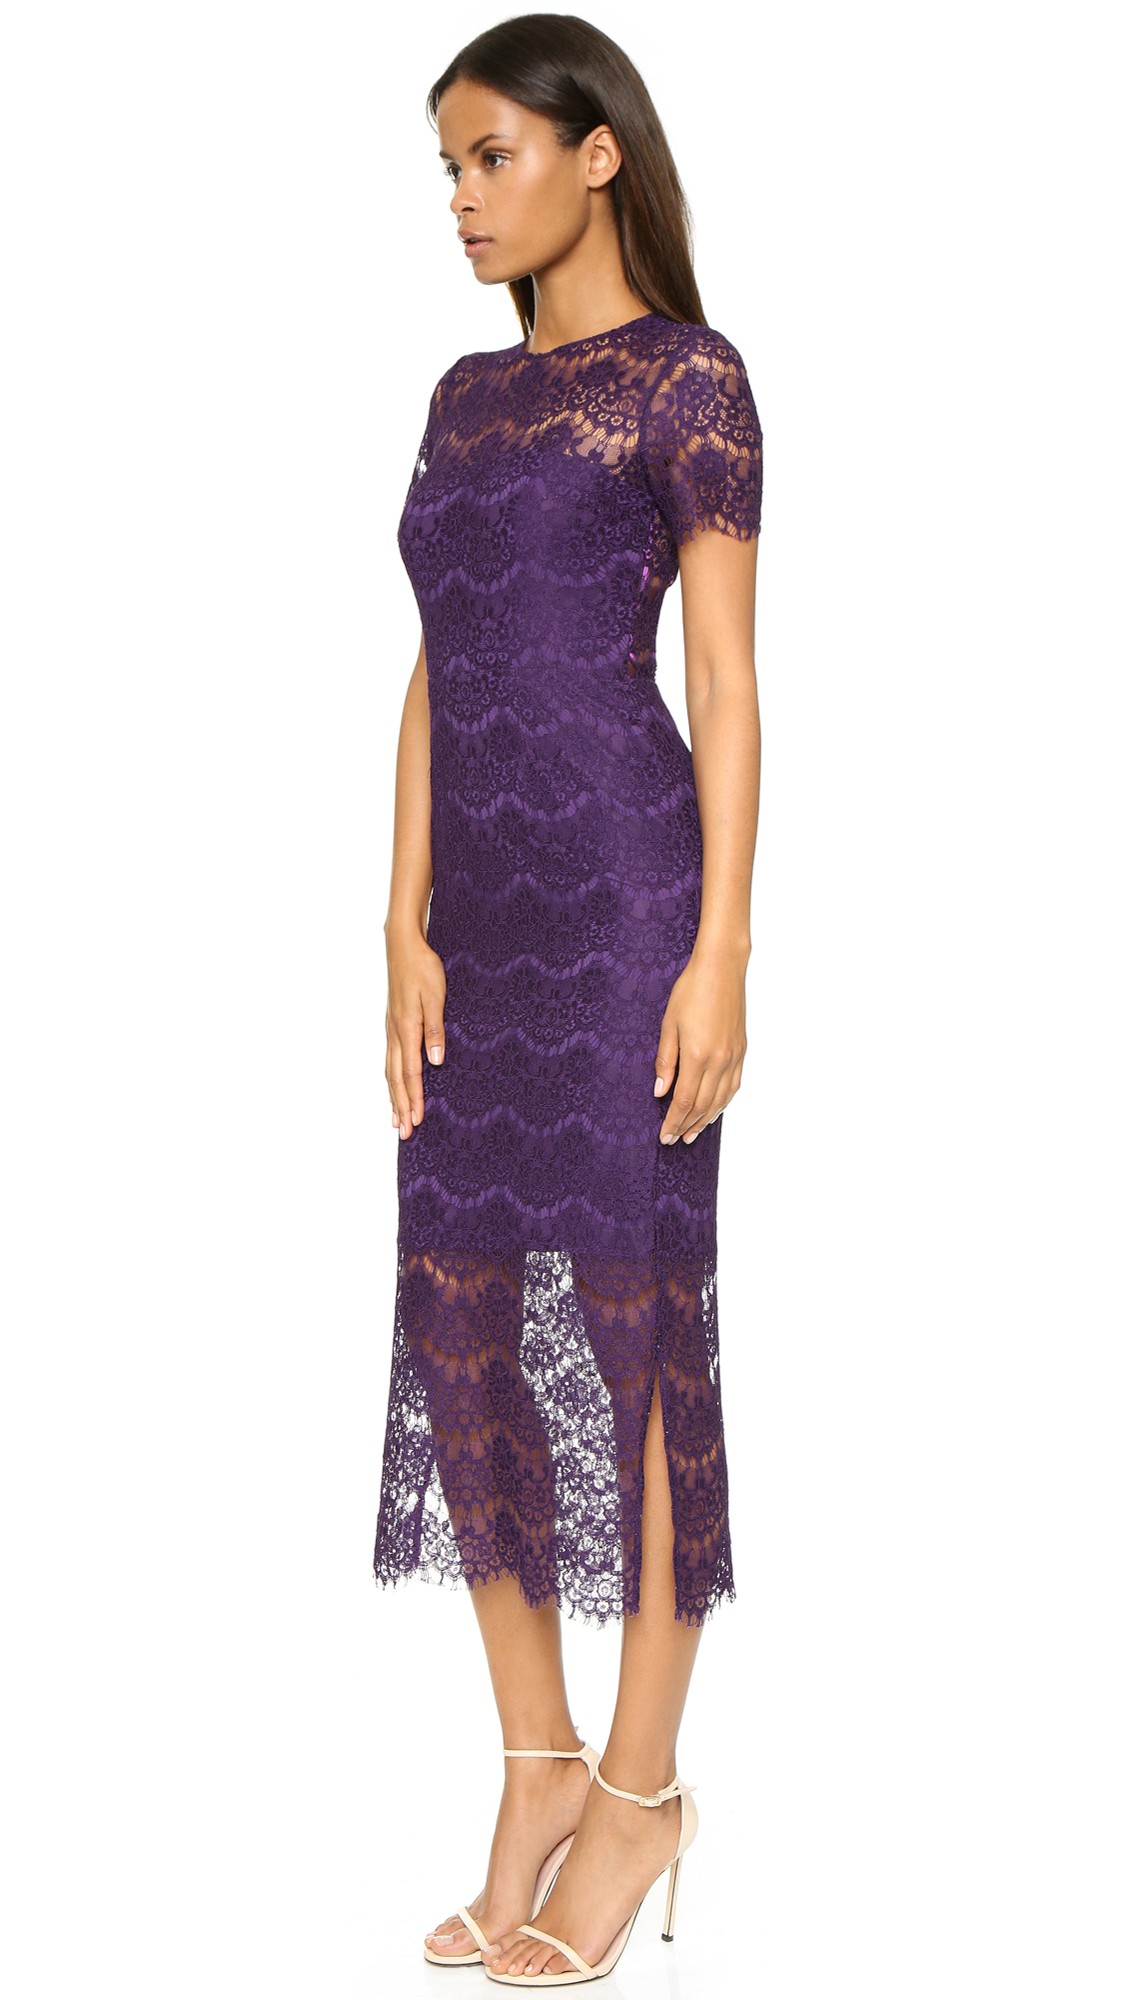 Cynthia rowley Scalloped Lace Dress - Plum in Purple | Lyst